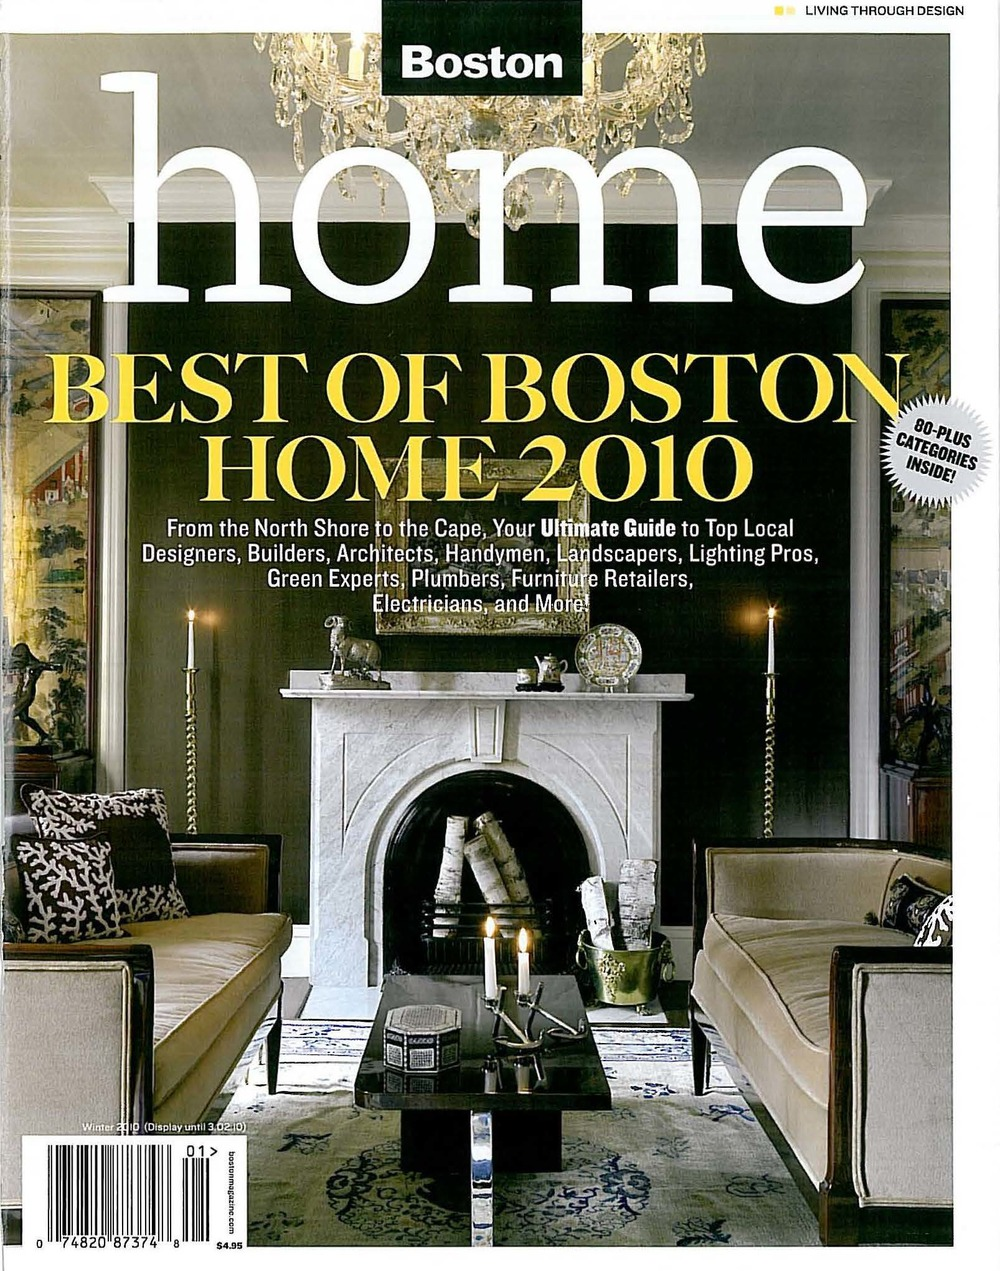 2010 Best of Boston Cover.jpg